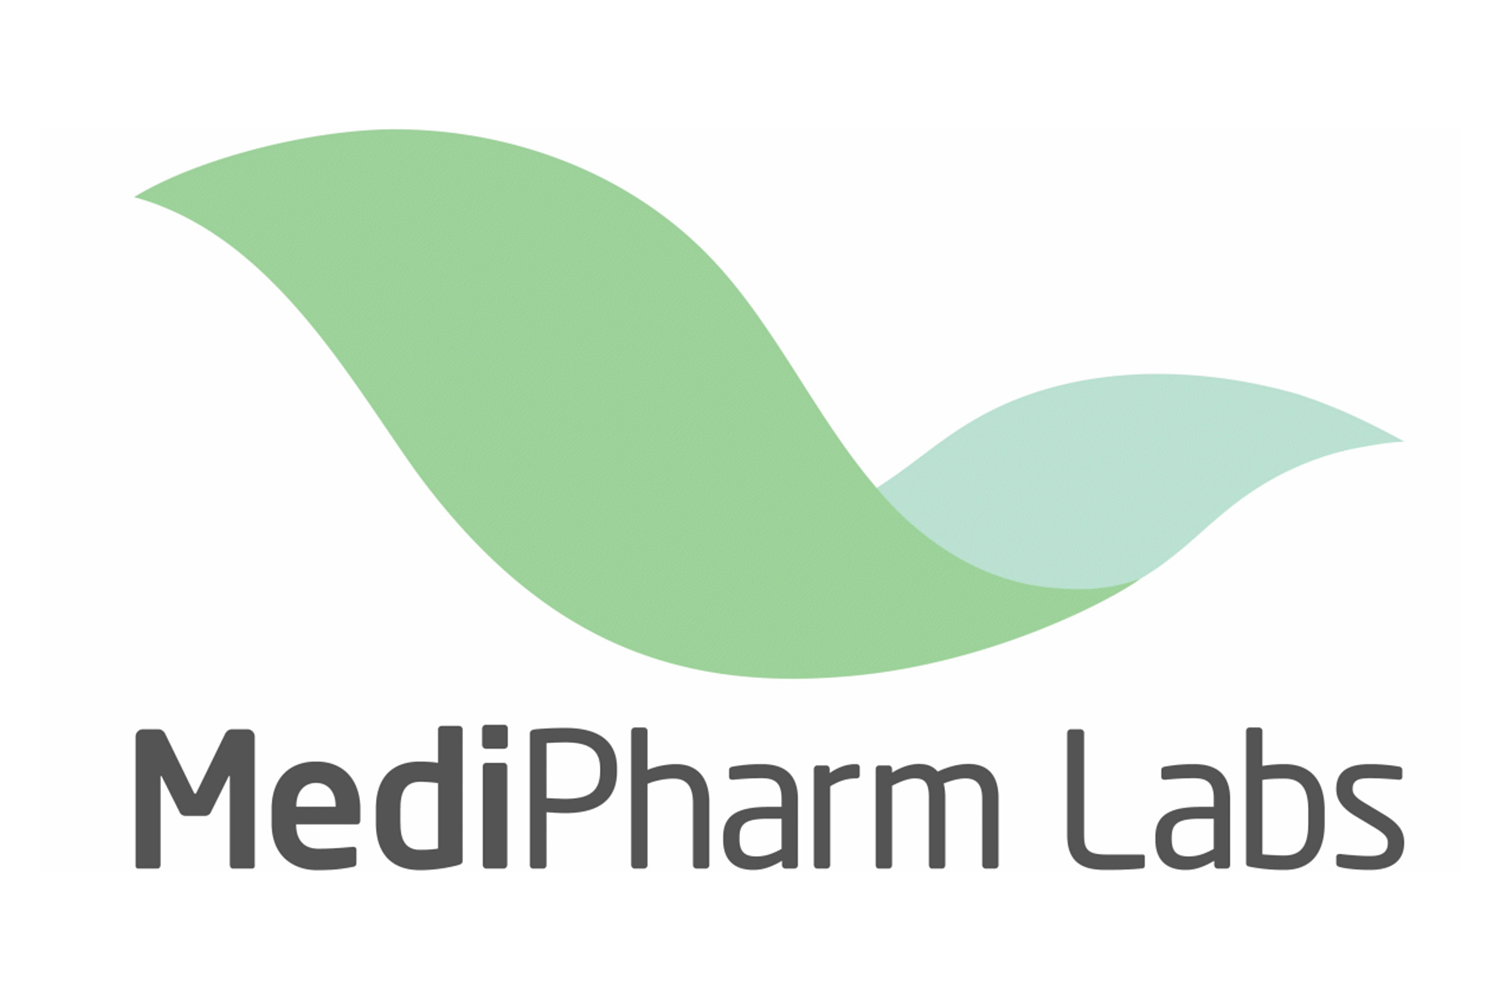 cannabis agency medipharm